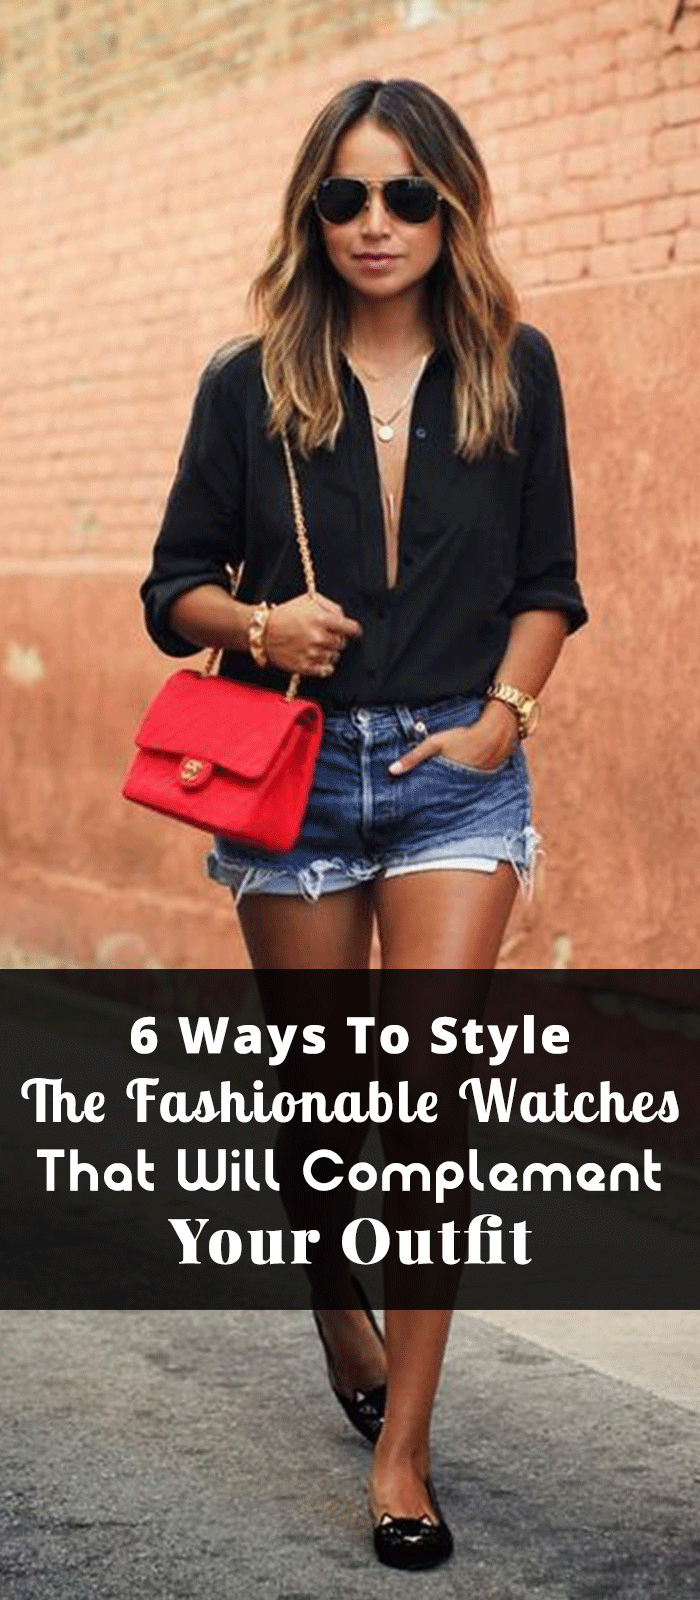 6 Ways To Style The Fashionable Watches That Will Complement Your Outfit